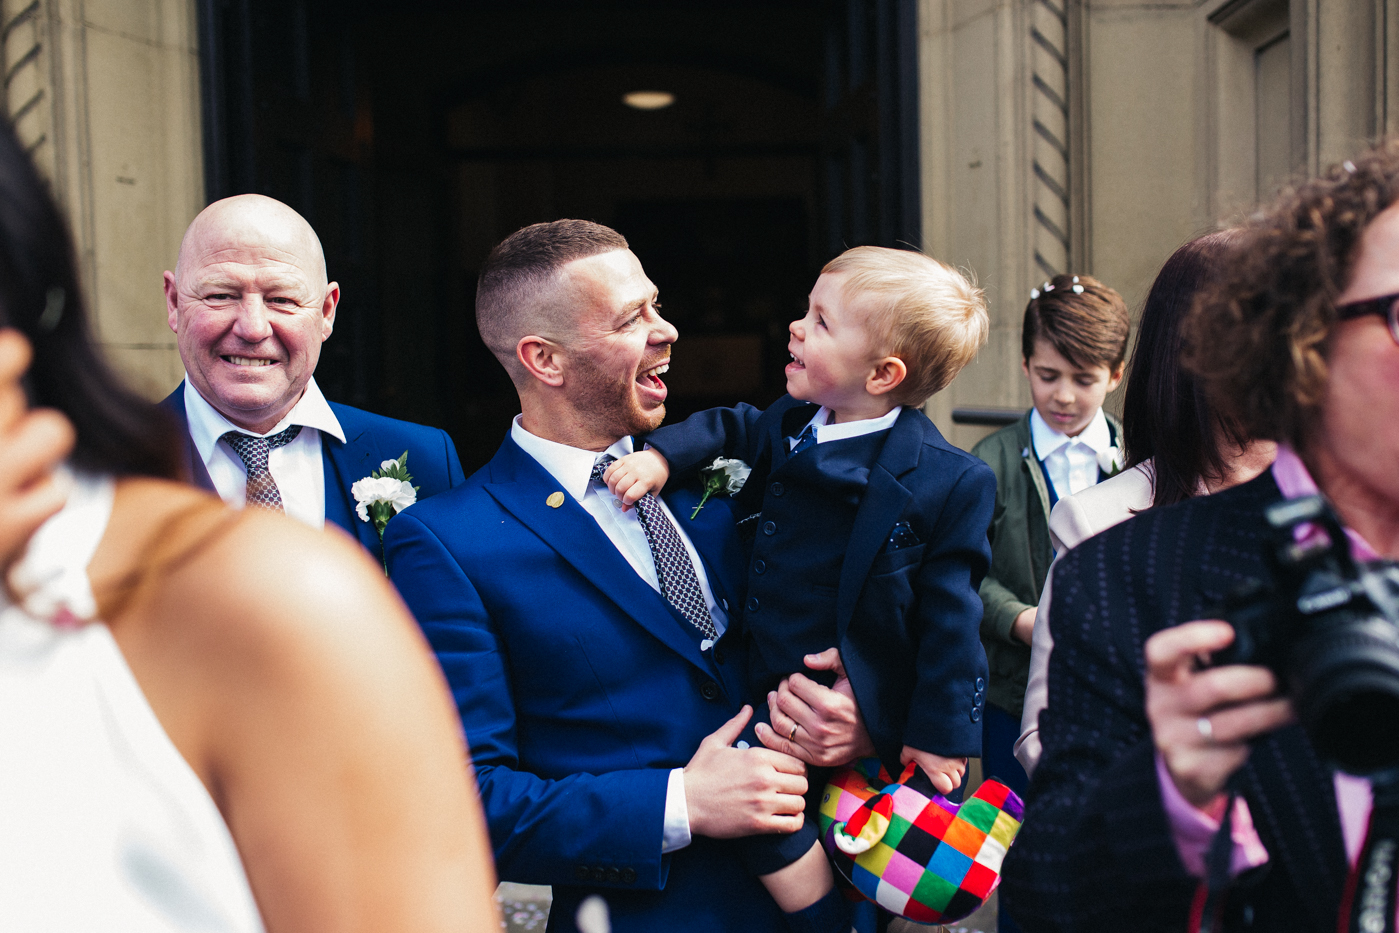 a little boy laughs at his dad during the confetti. relaxed teesside middlesbrough wedding photographer, wedding at home